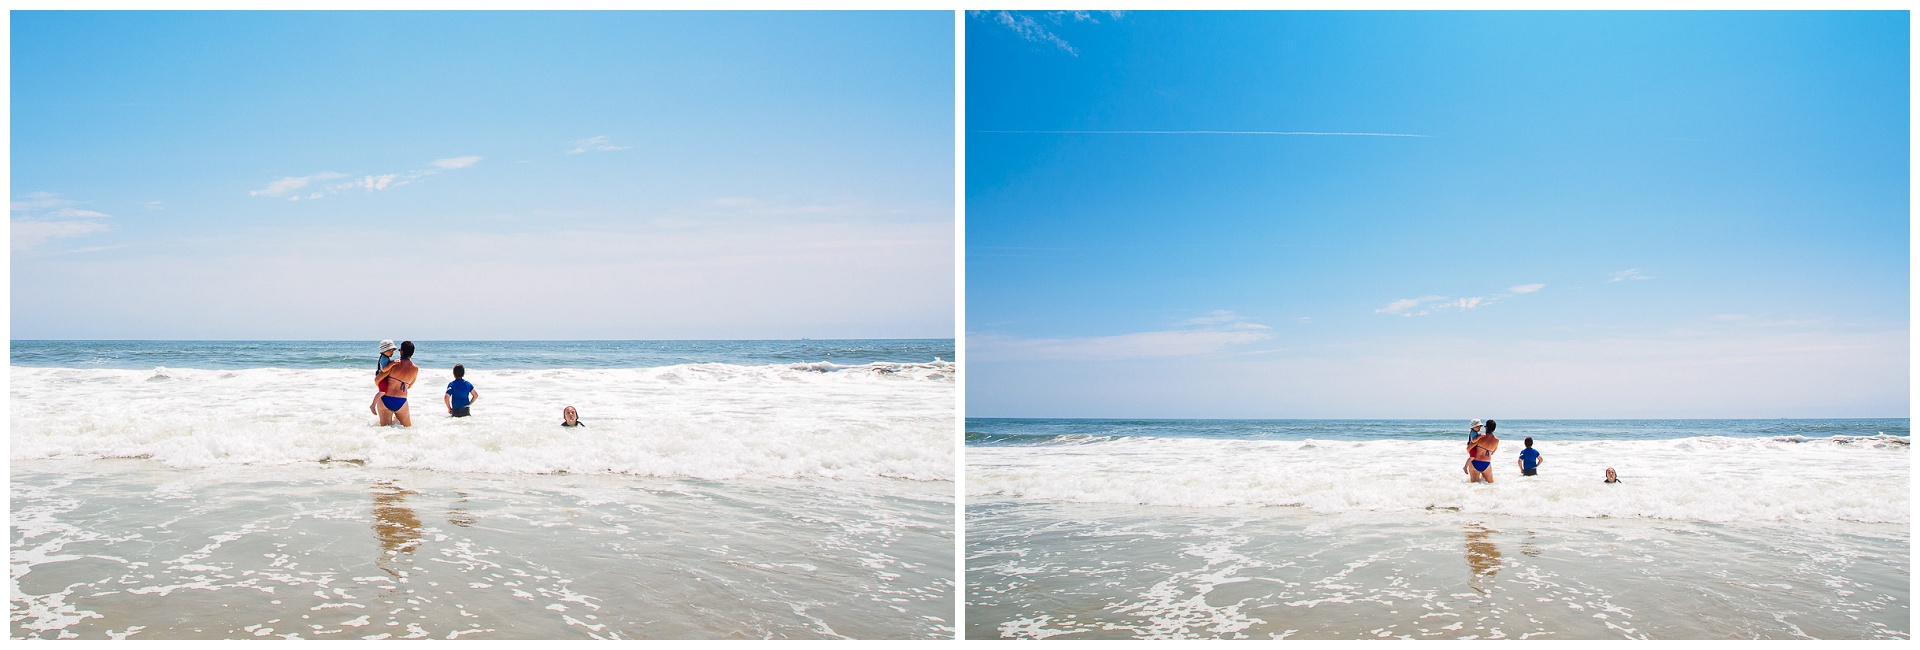 Centered composition vs Rule of Thirds